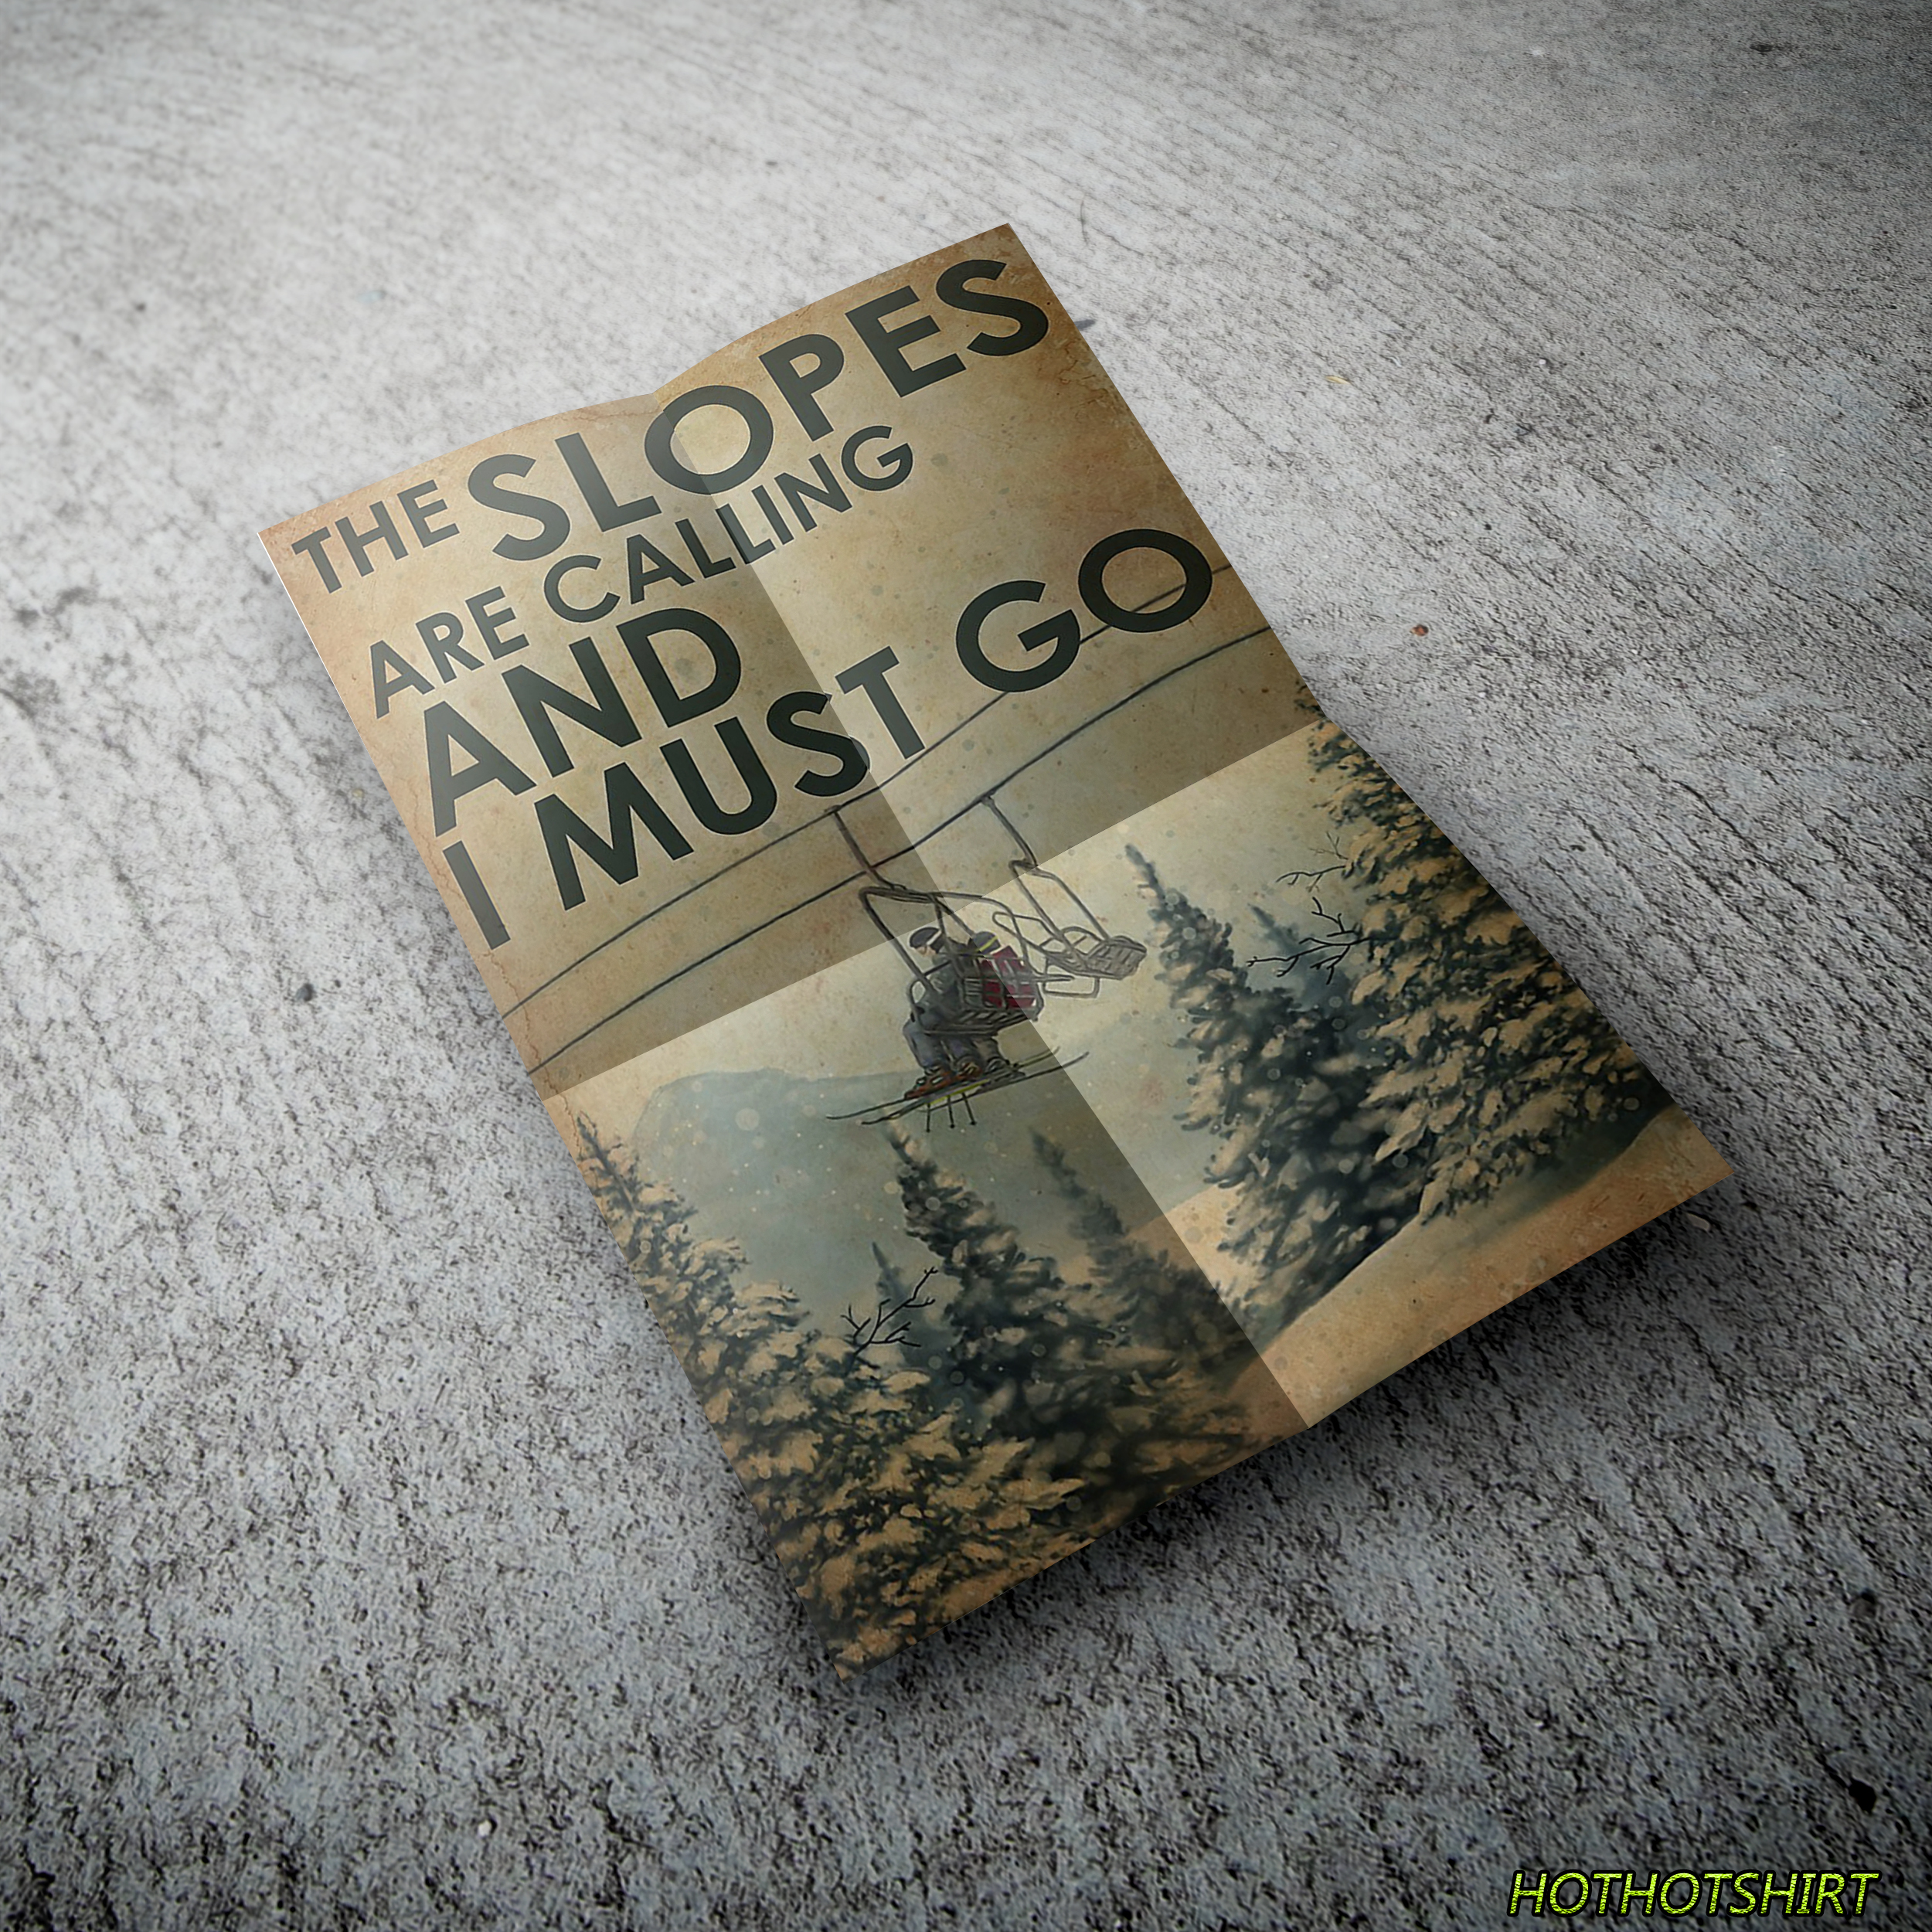 The Slopes Are Calling And I Must Go Canvas Poster